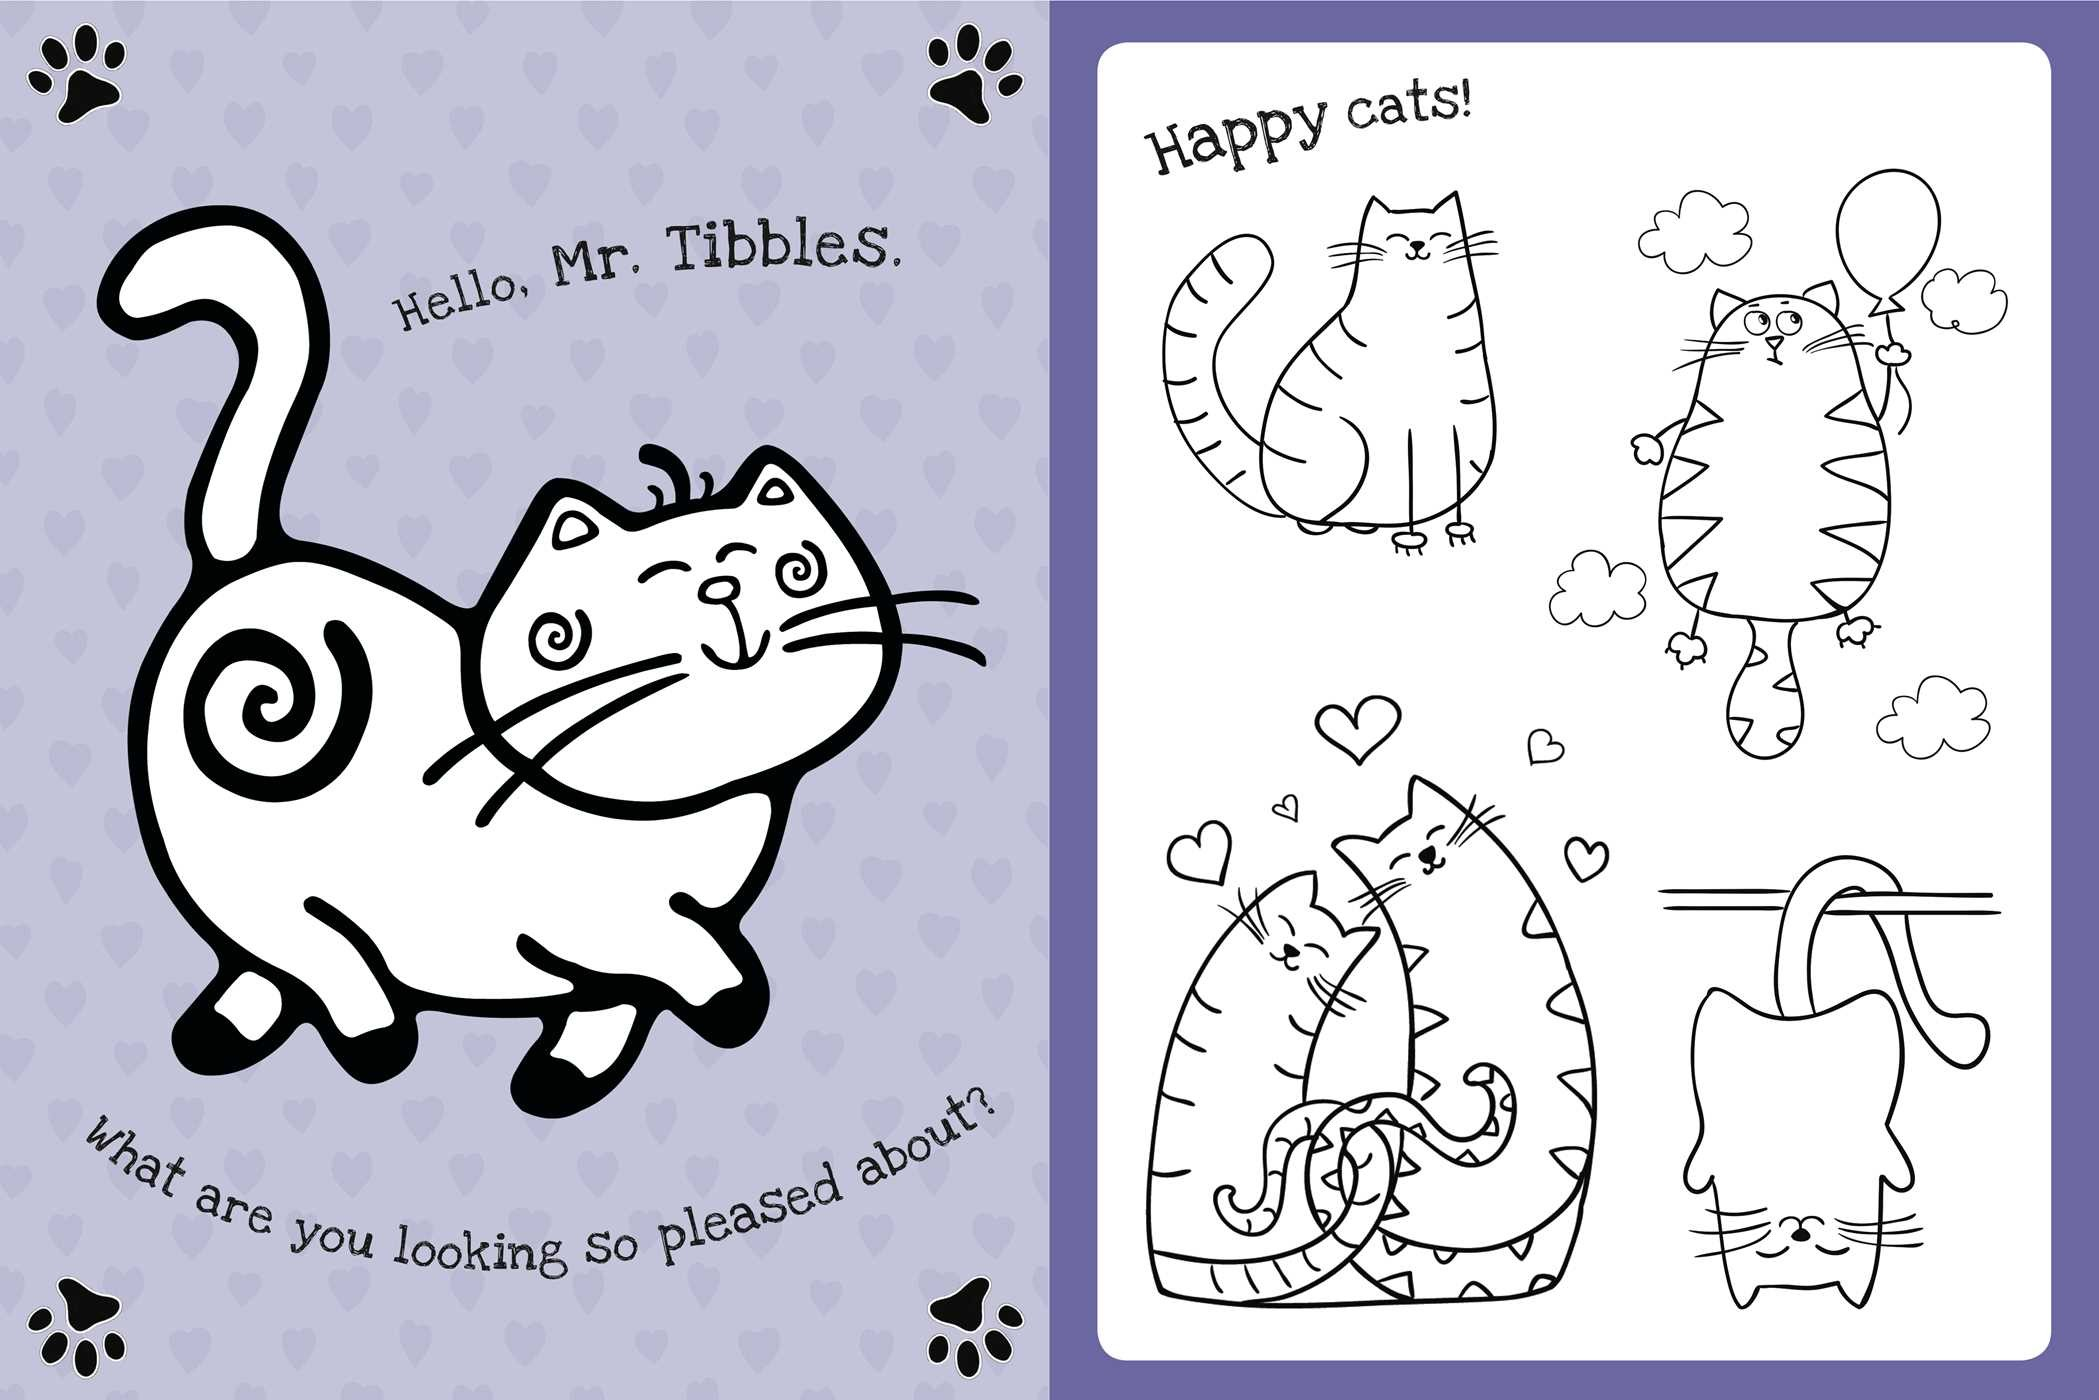 The Too Cute Coloring Book Kittens 9781499802061in02